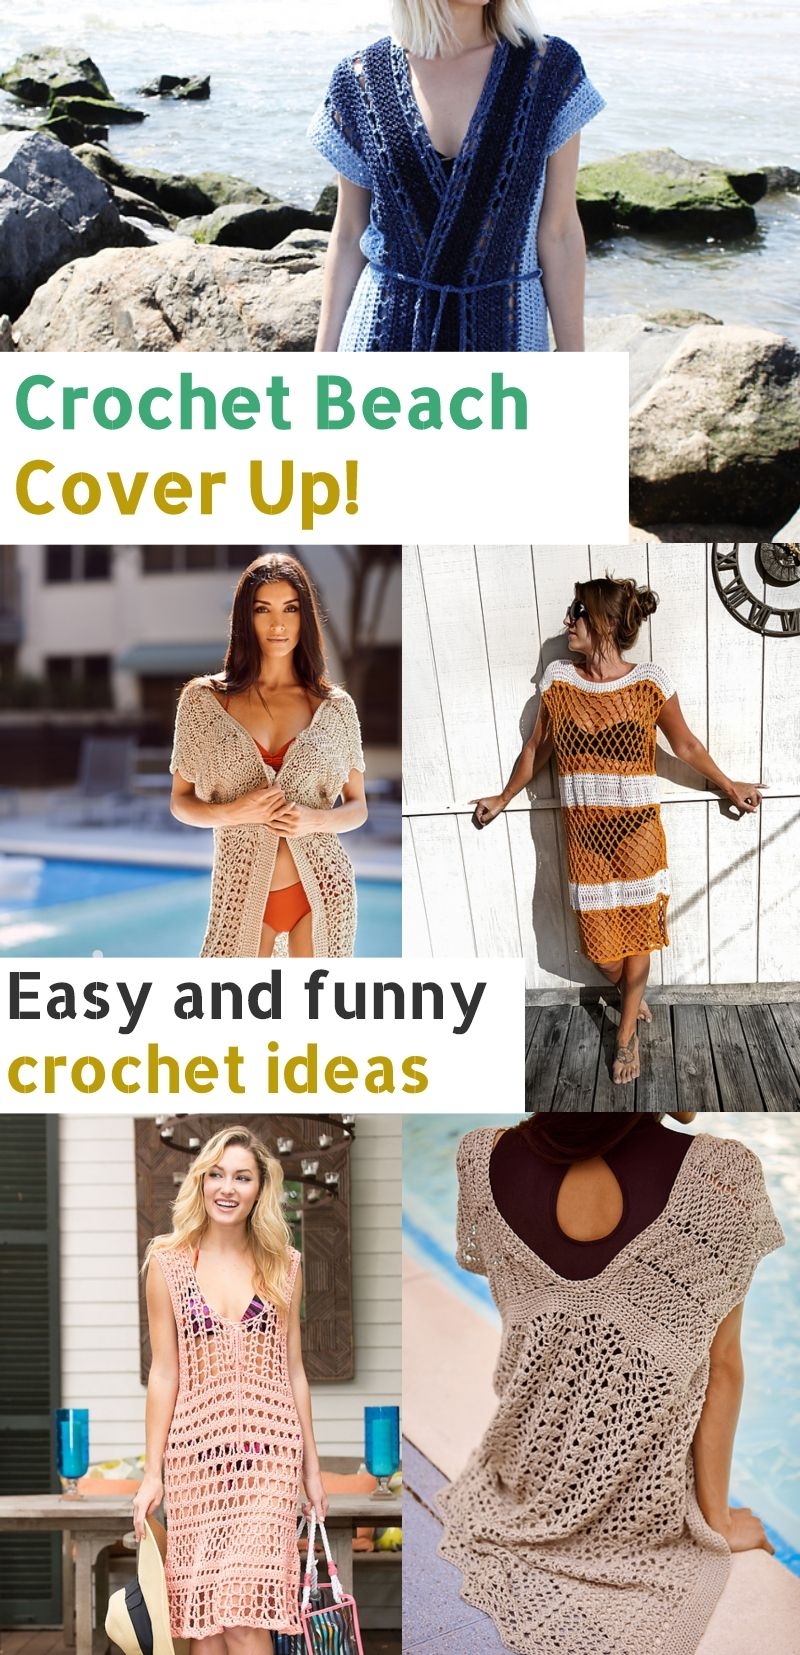 Crochet Beach Cover Up Free Patterns And Easy Ideas Crochet Beach Wear Crochet Beach Wear Pattern Crochet Bathing Suit Cover